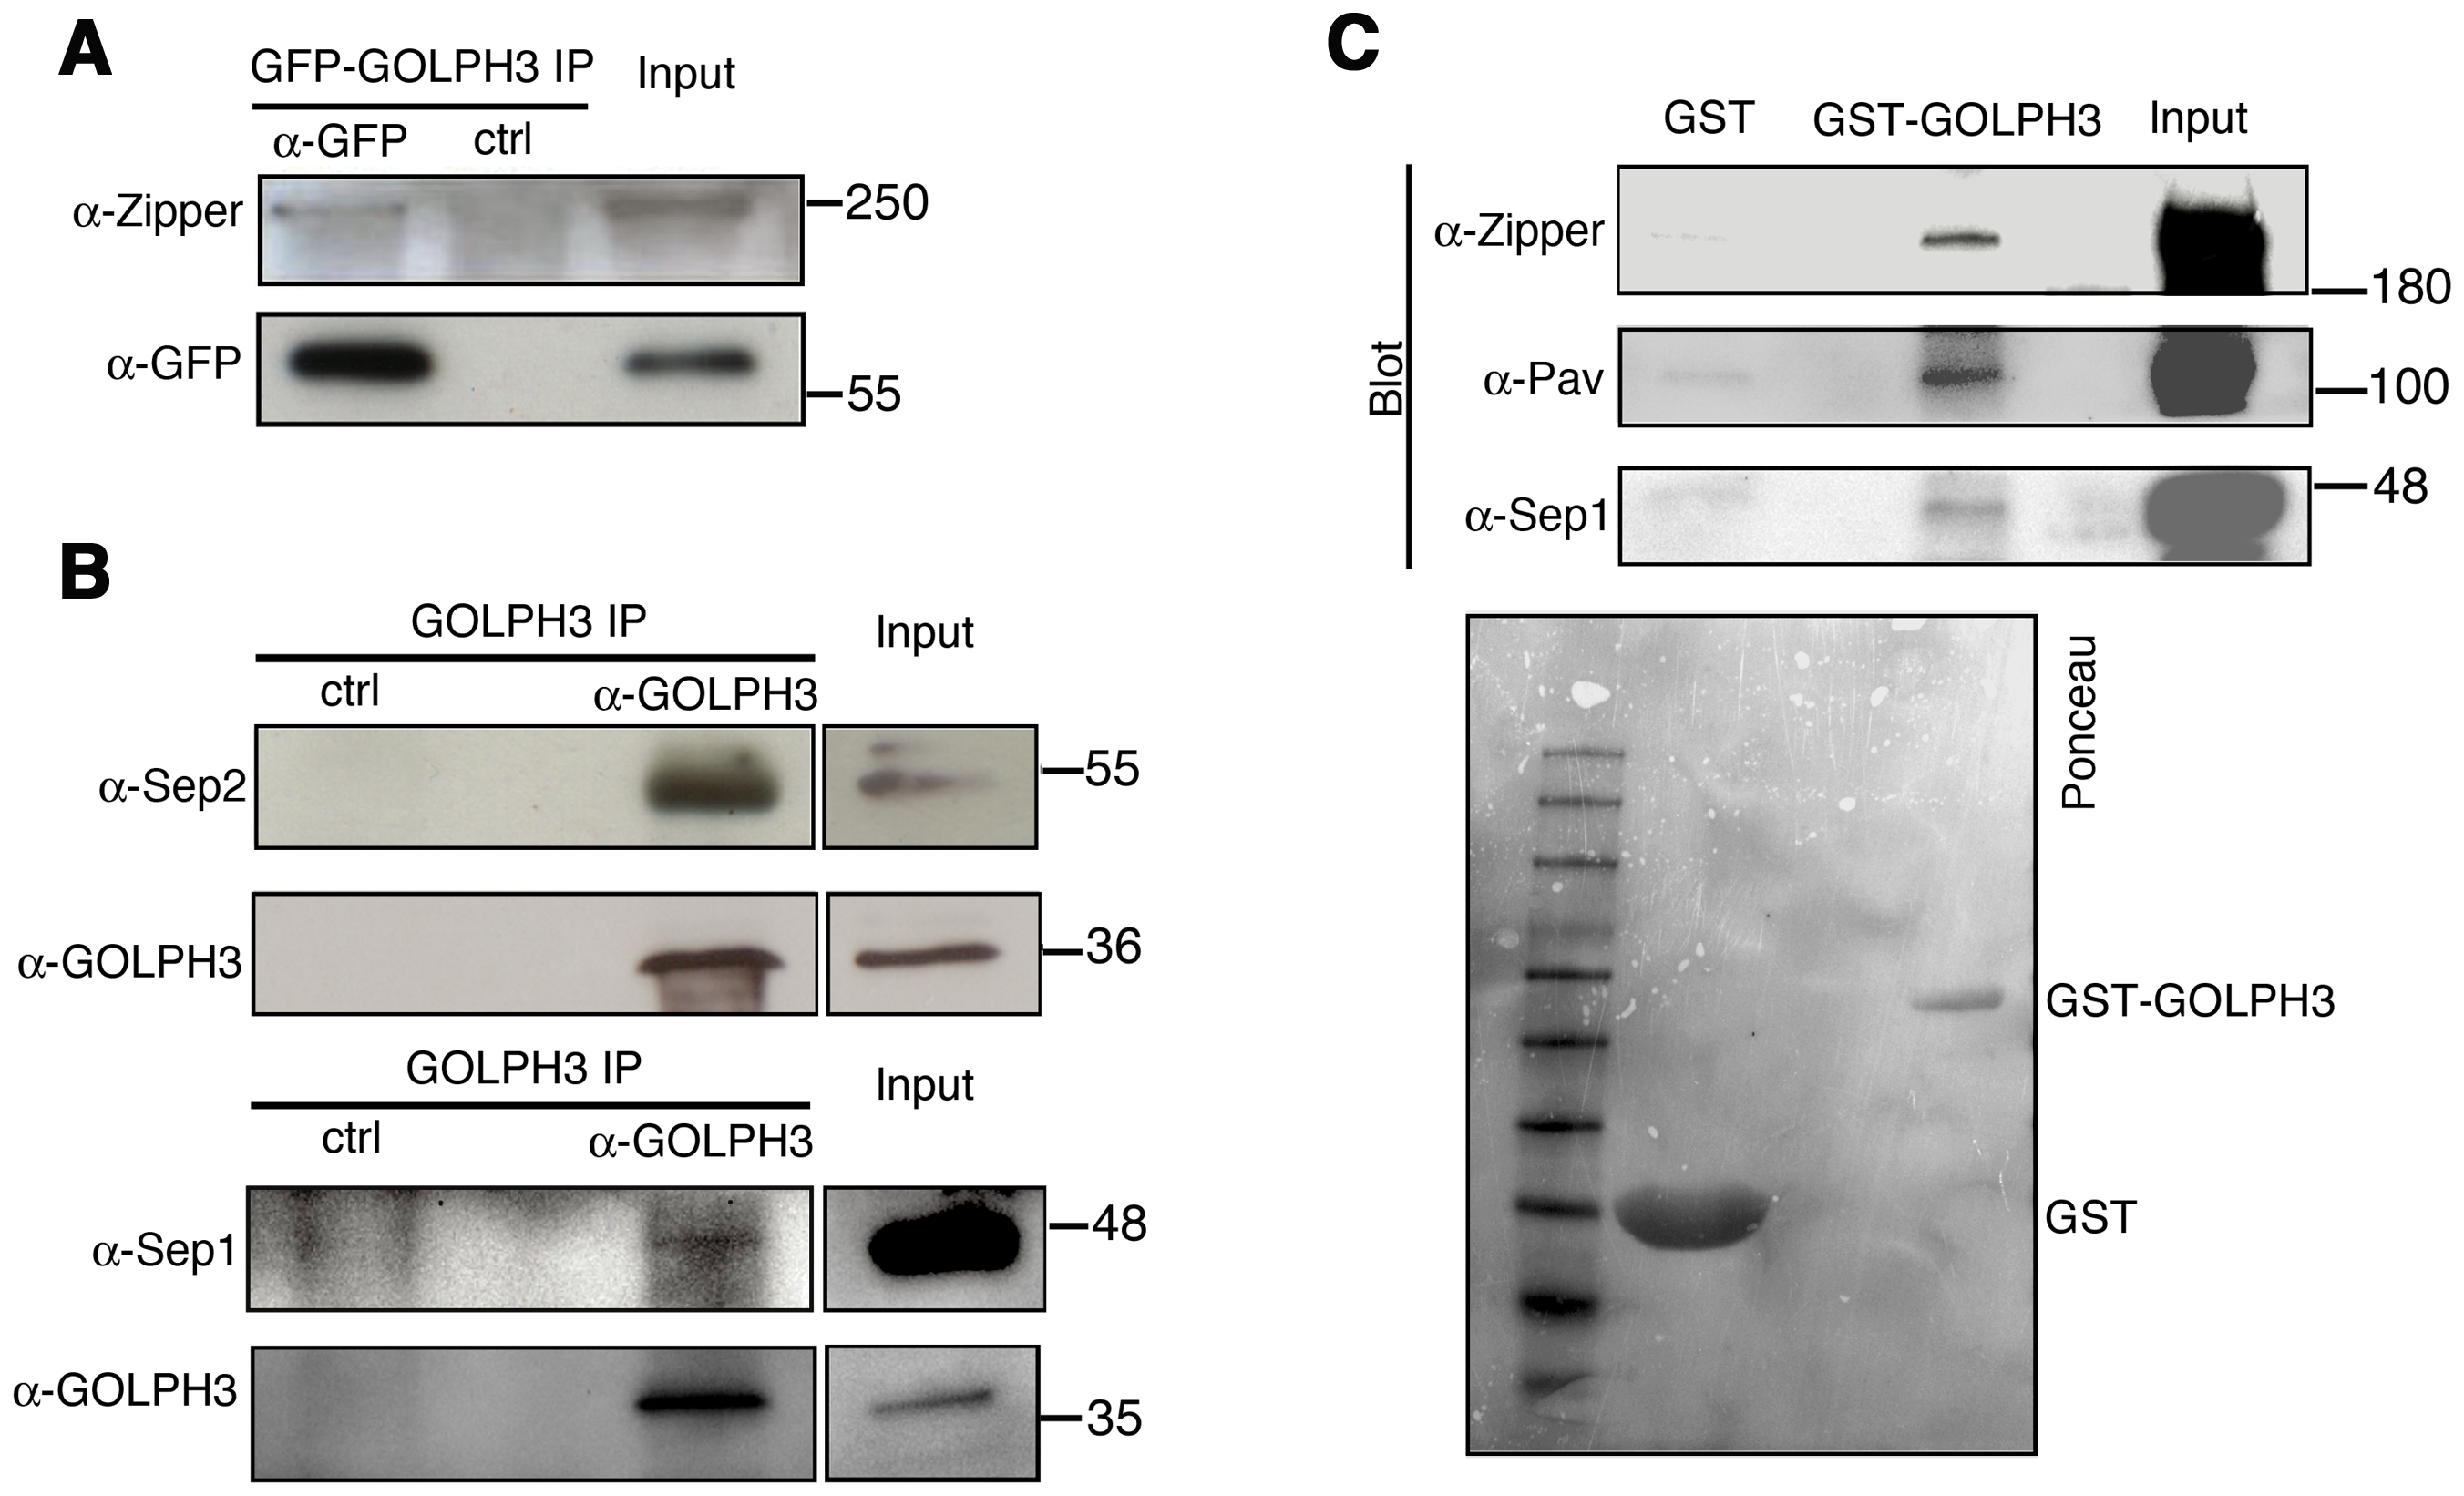 GOLPH3 protein interacts with both cytokinetic proteins in testis extracts.